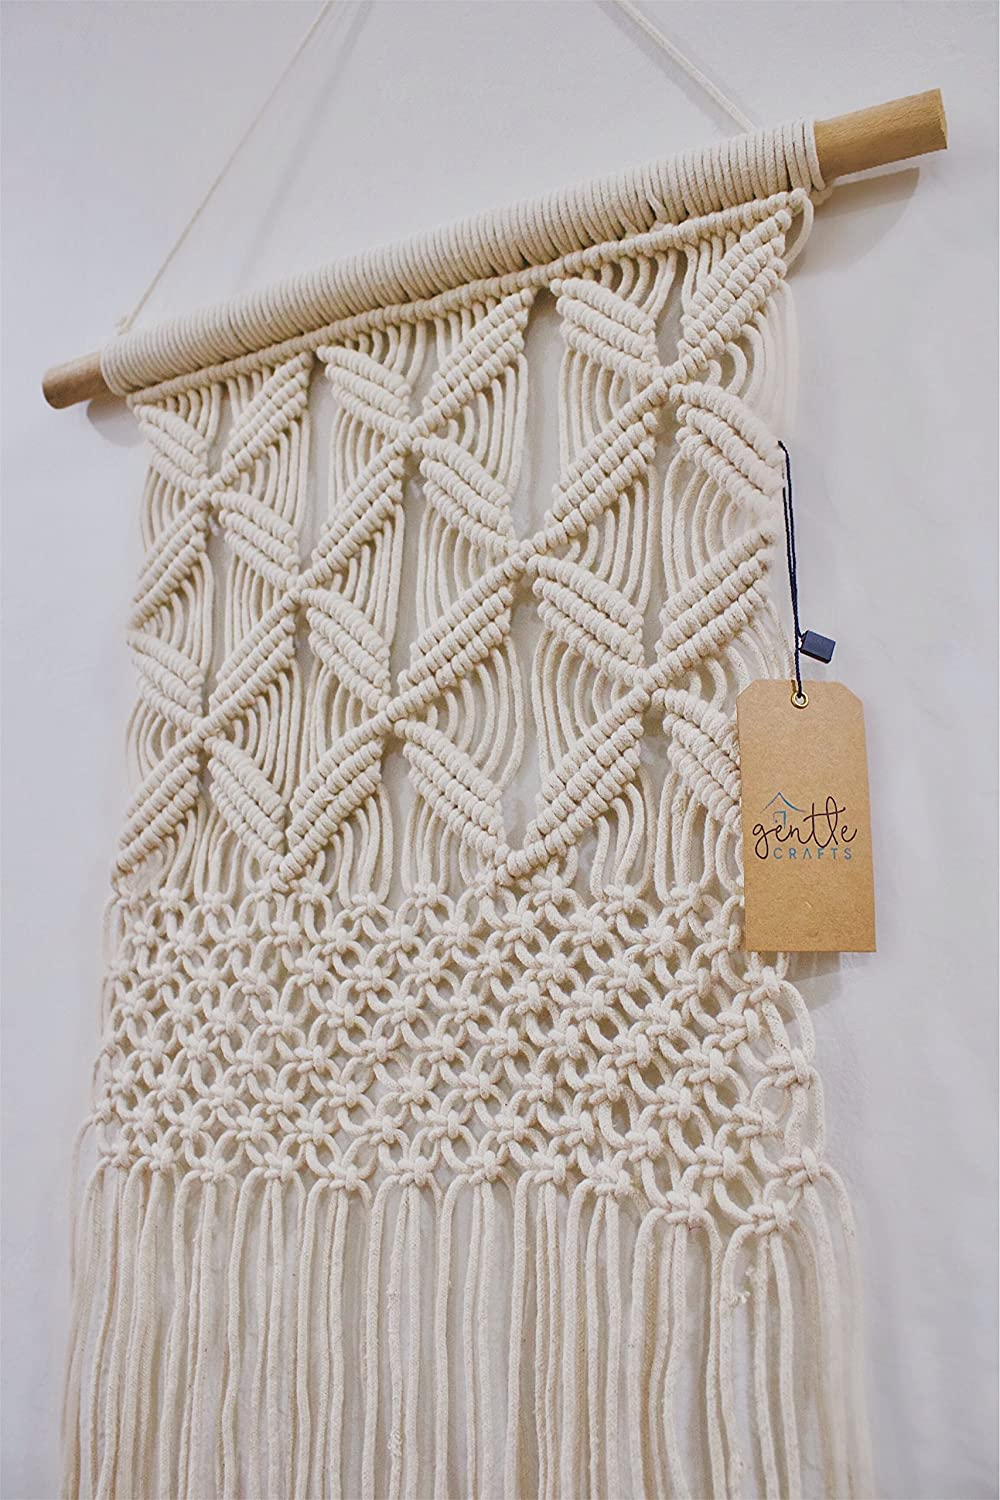 Amazon Com Gentle Crafts Boho Macrame Hanging Wall Decor Decorative Wall Art Cotton Rope Cord Woven Tapestry Home Decorations For The Living Room Kitchen Bedroom Or Apartment Everything Else